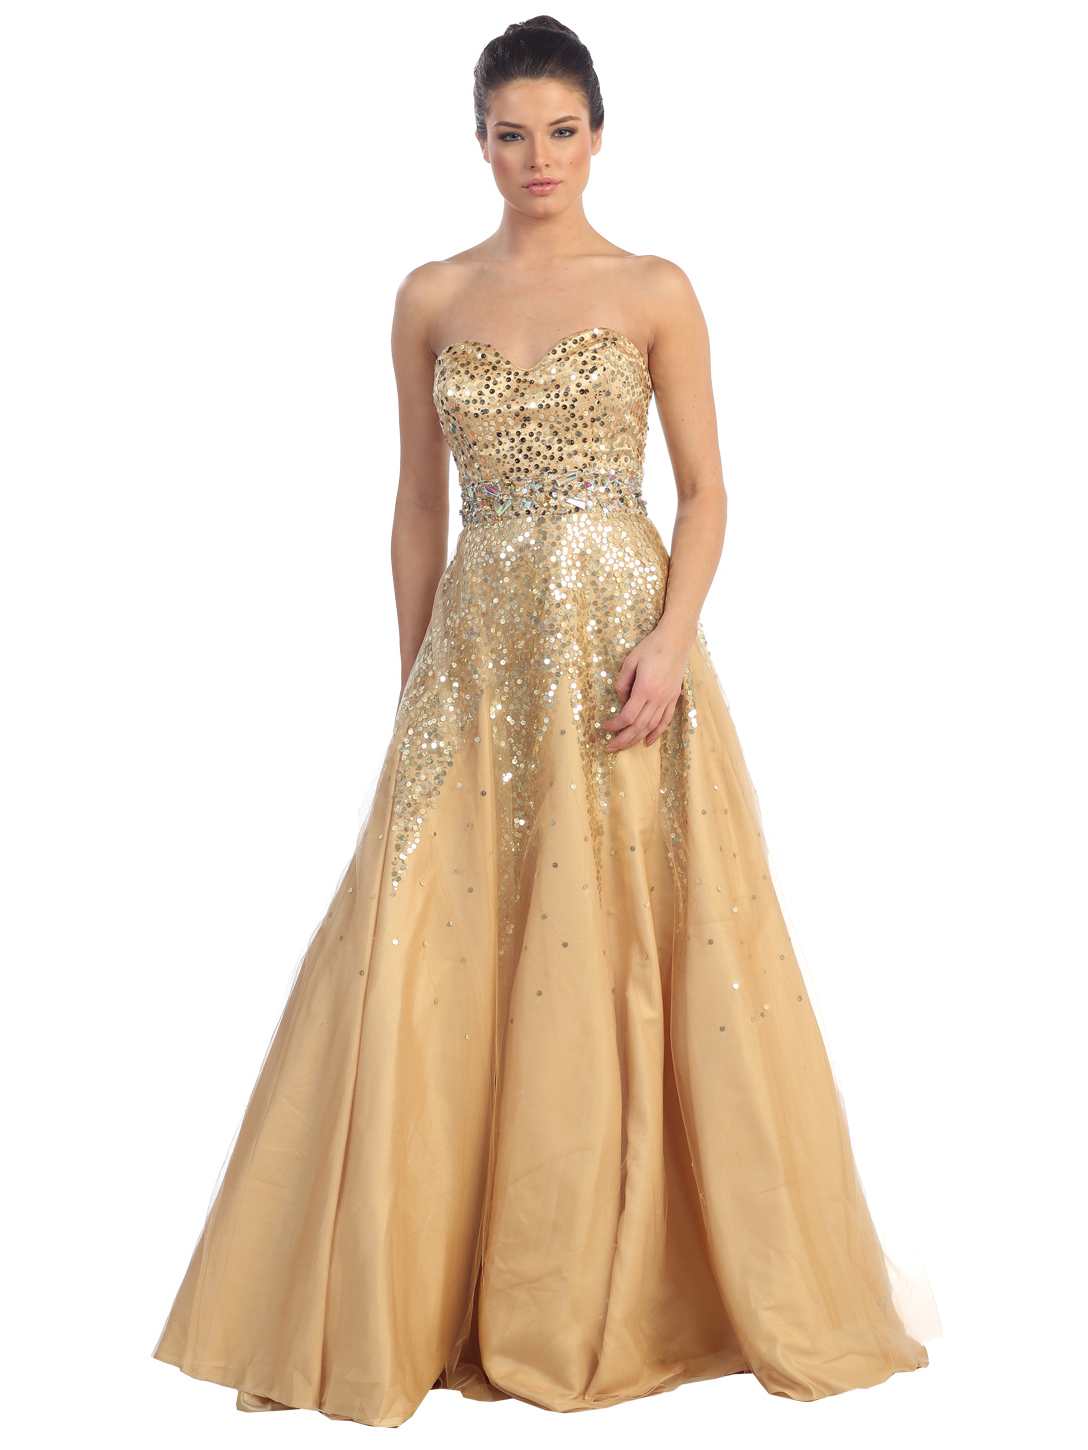 Sweetheart Sequin Evening Gown | Sung Boutique L.A.